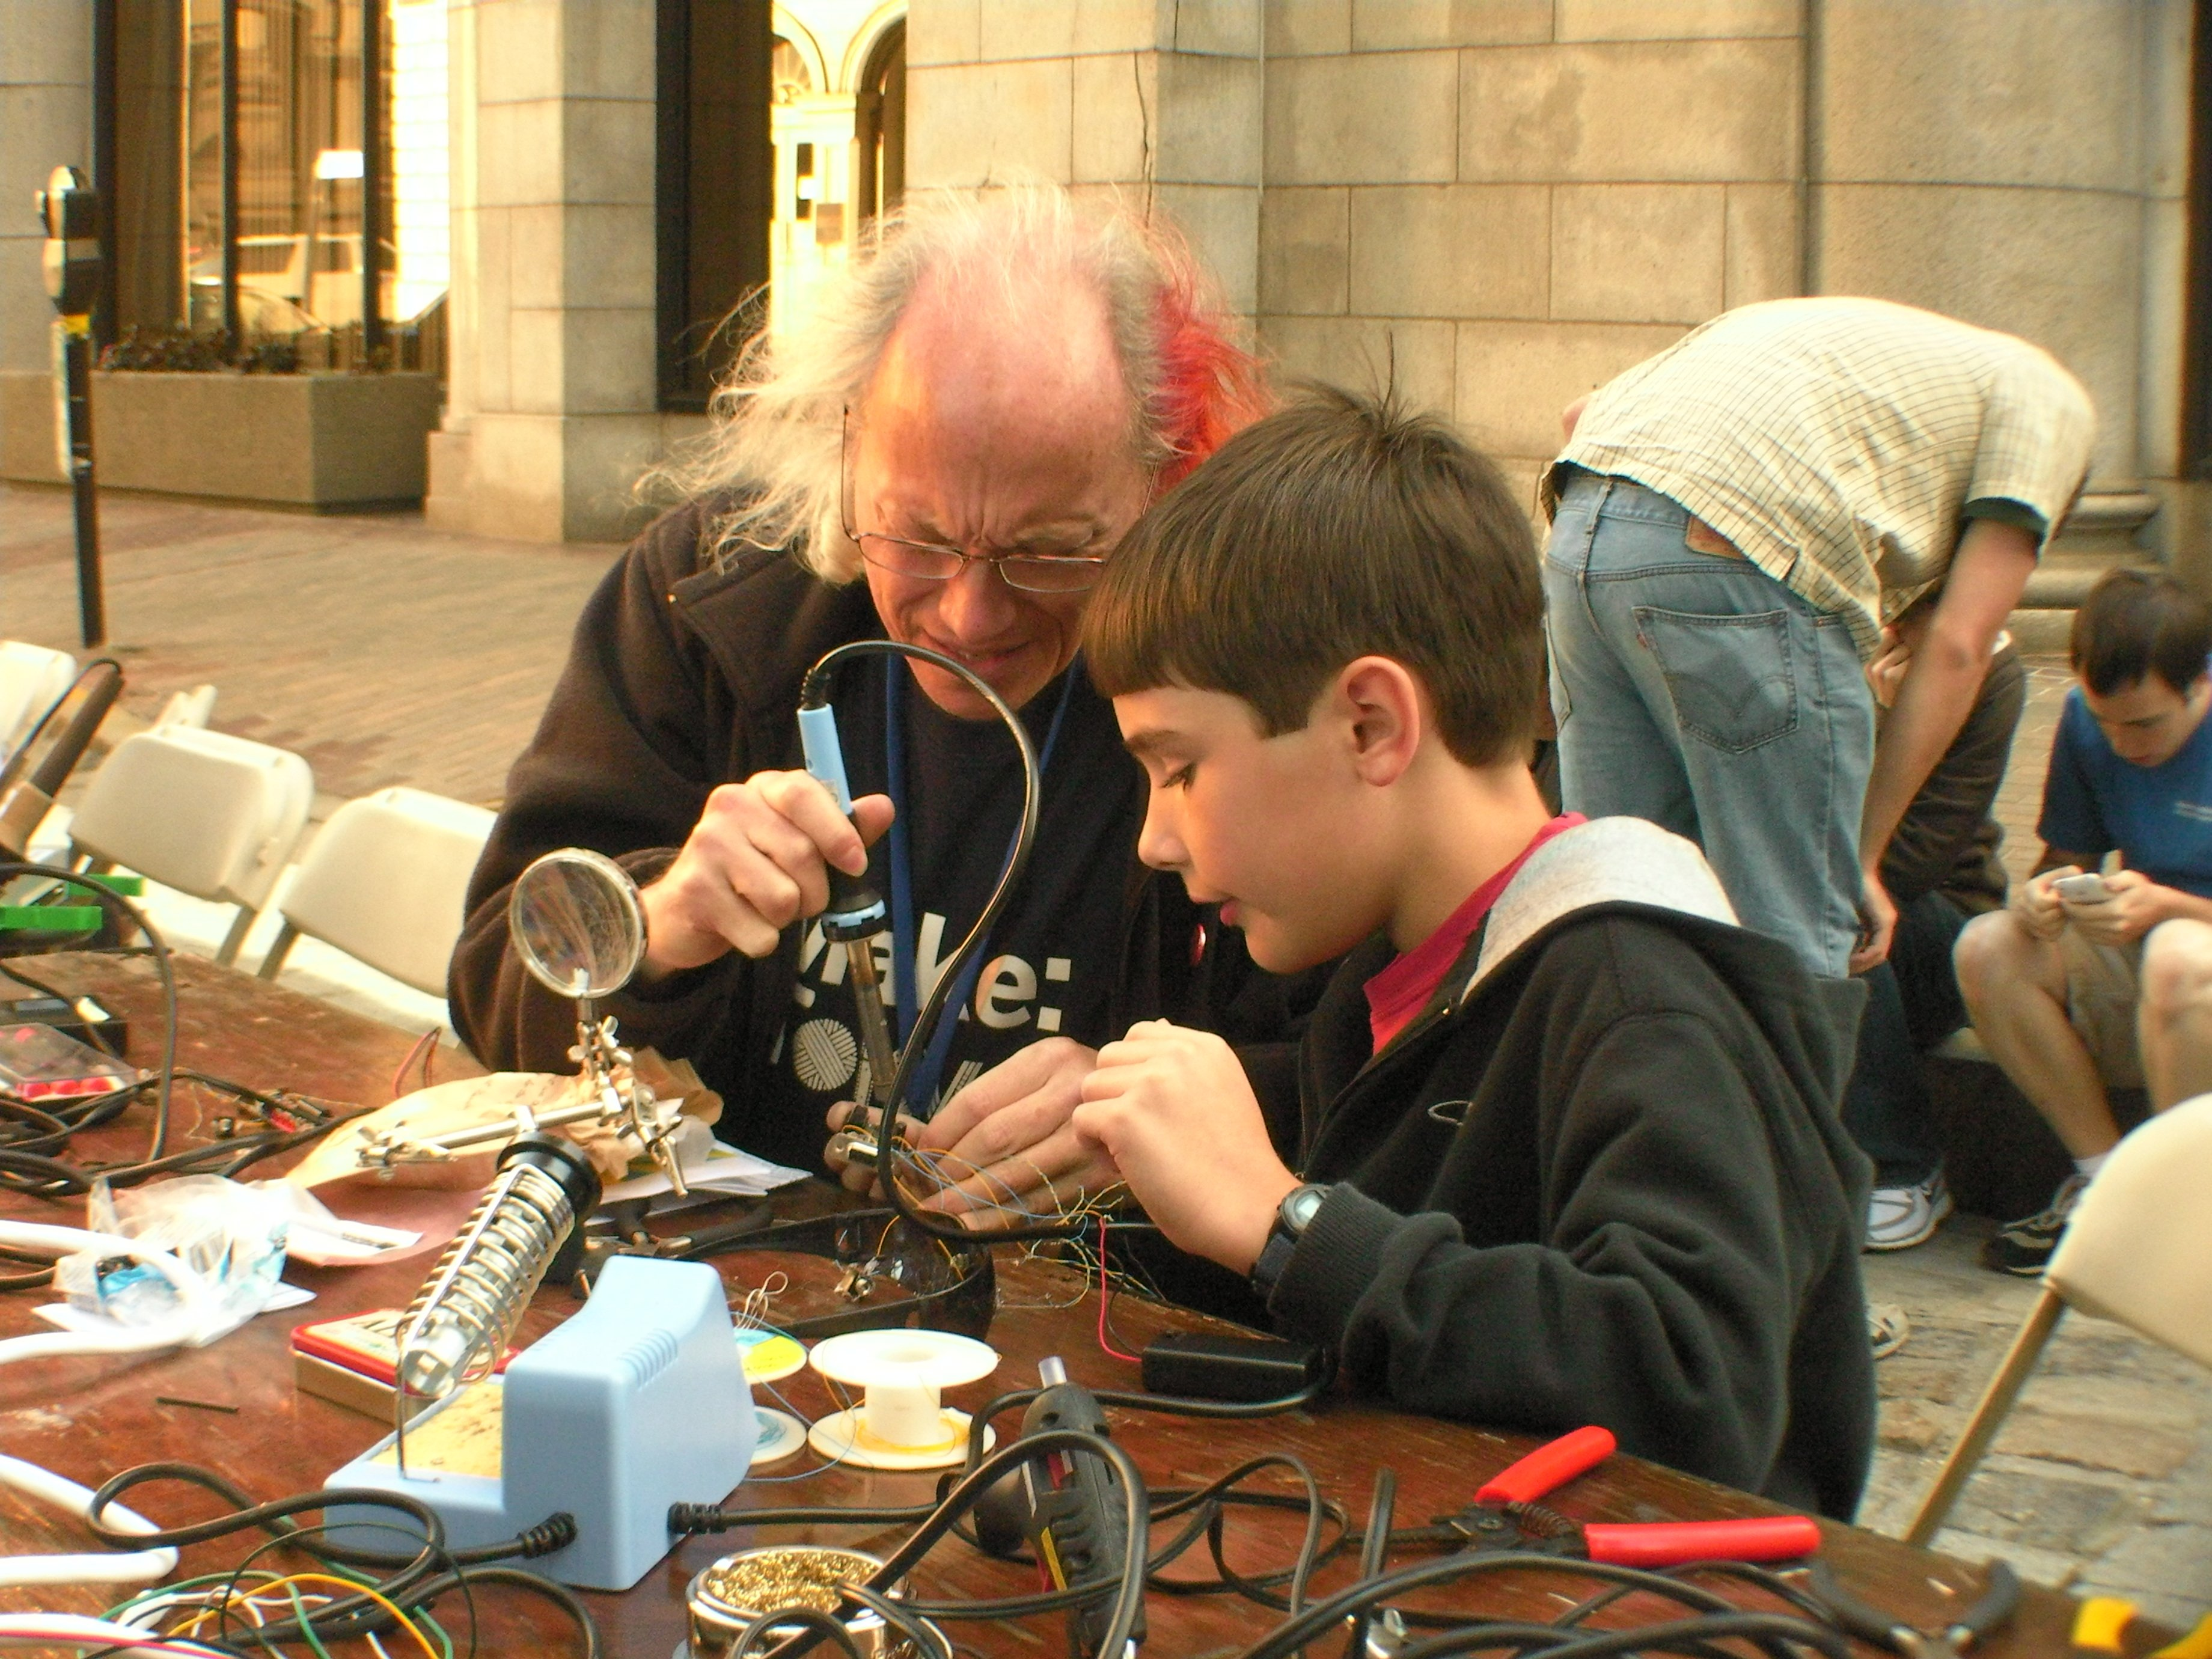 Mitch Altman Teaches Soldering at the first Rhode Island Mini Maker Faire. Photo Credit: Becky Stern